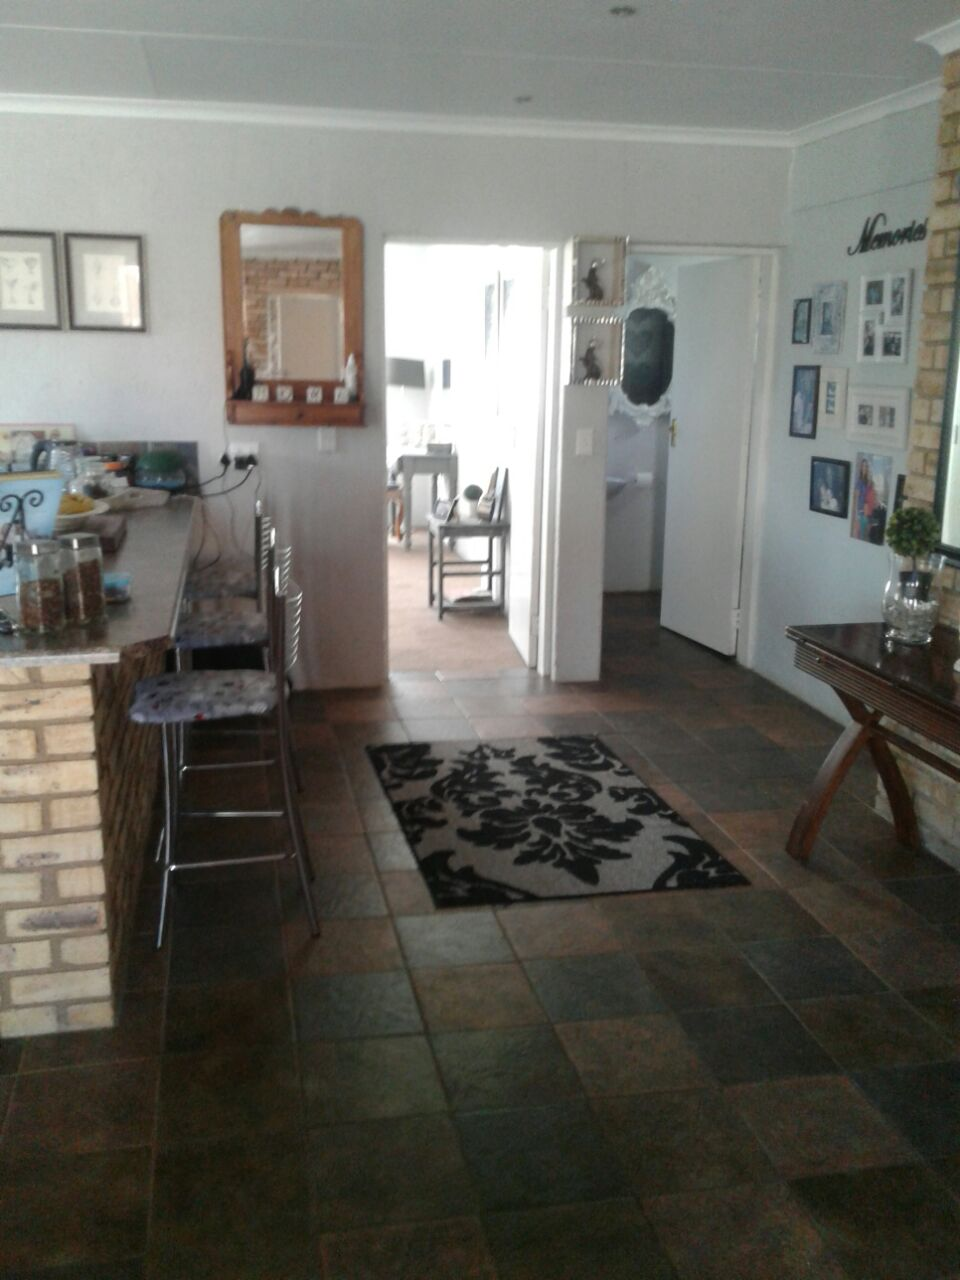 Krugersdorp. House to let. Only R 7500 per month. Very spacious house.